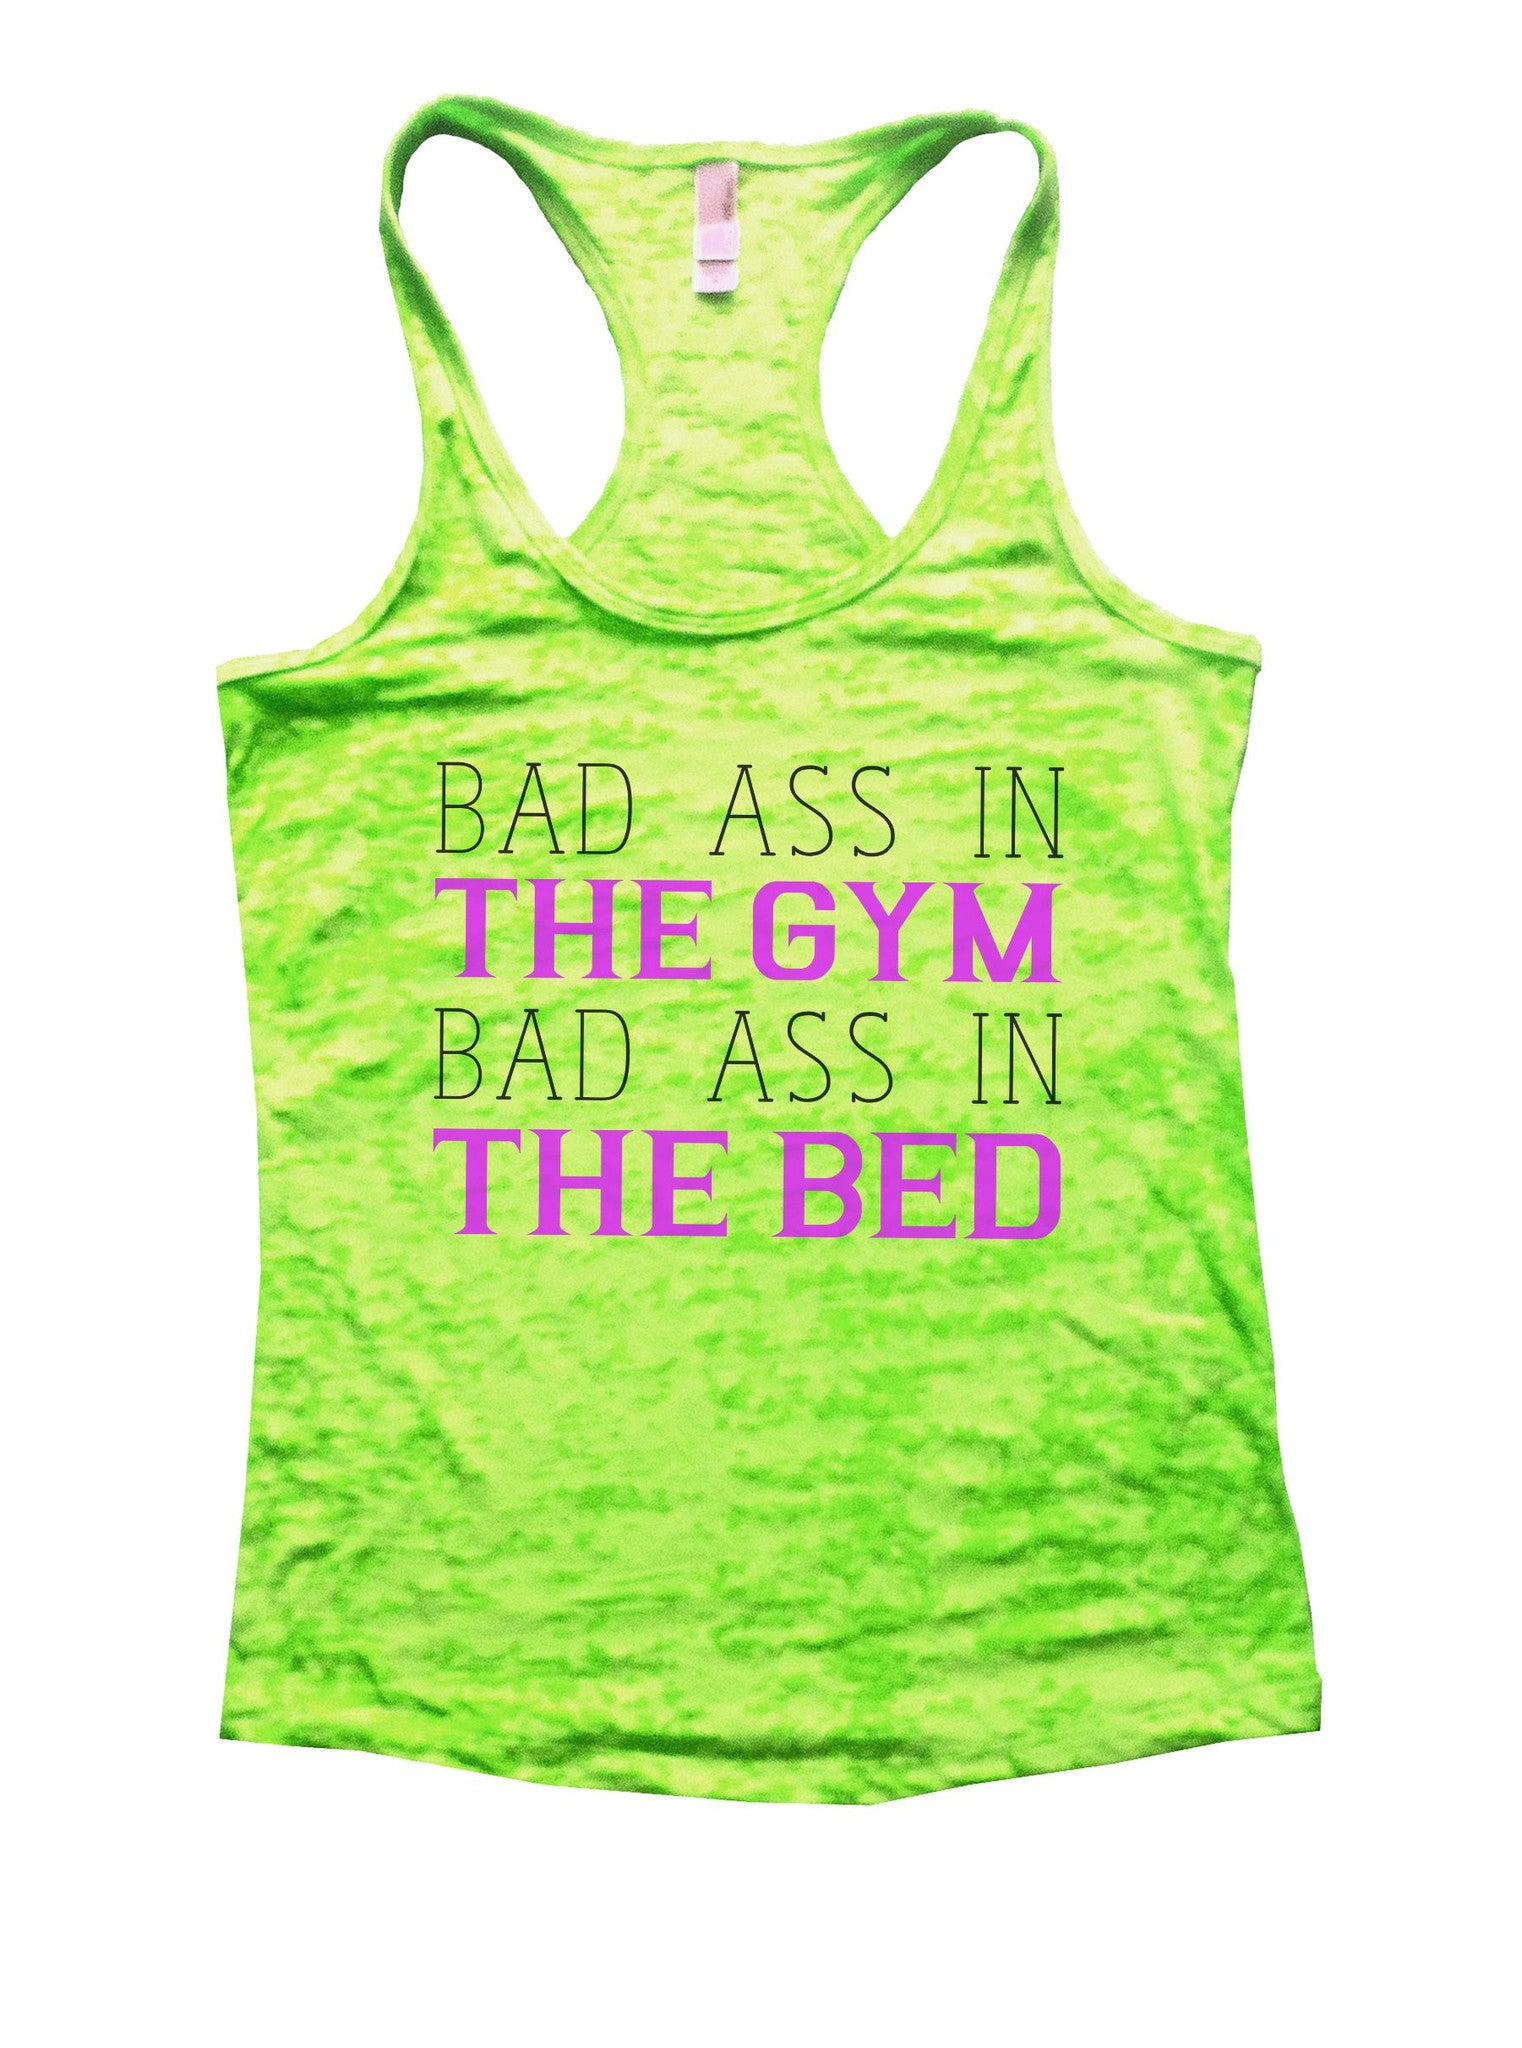 Bad Ass In The Gym Bad Ass In The Bed Burnout Tank Top By BurnoutTankTops.com - 864 - Funny Shirts Tank Tops Burnouts and Triblends  - 2